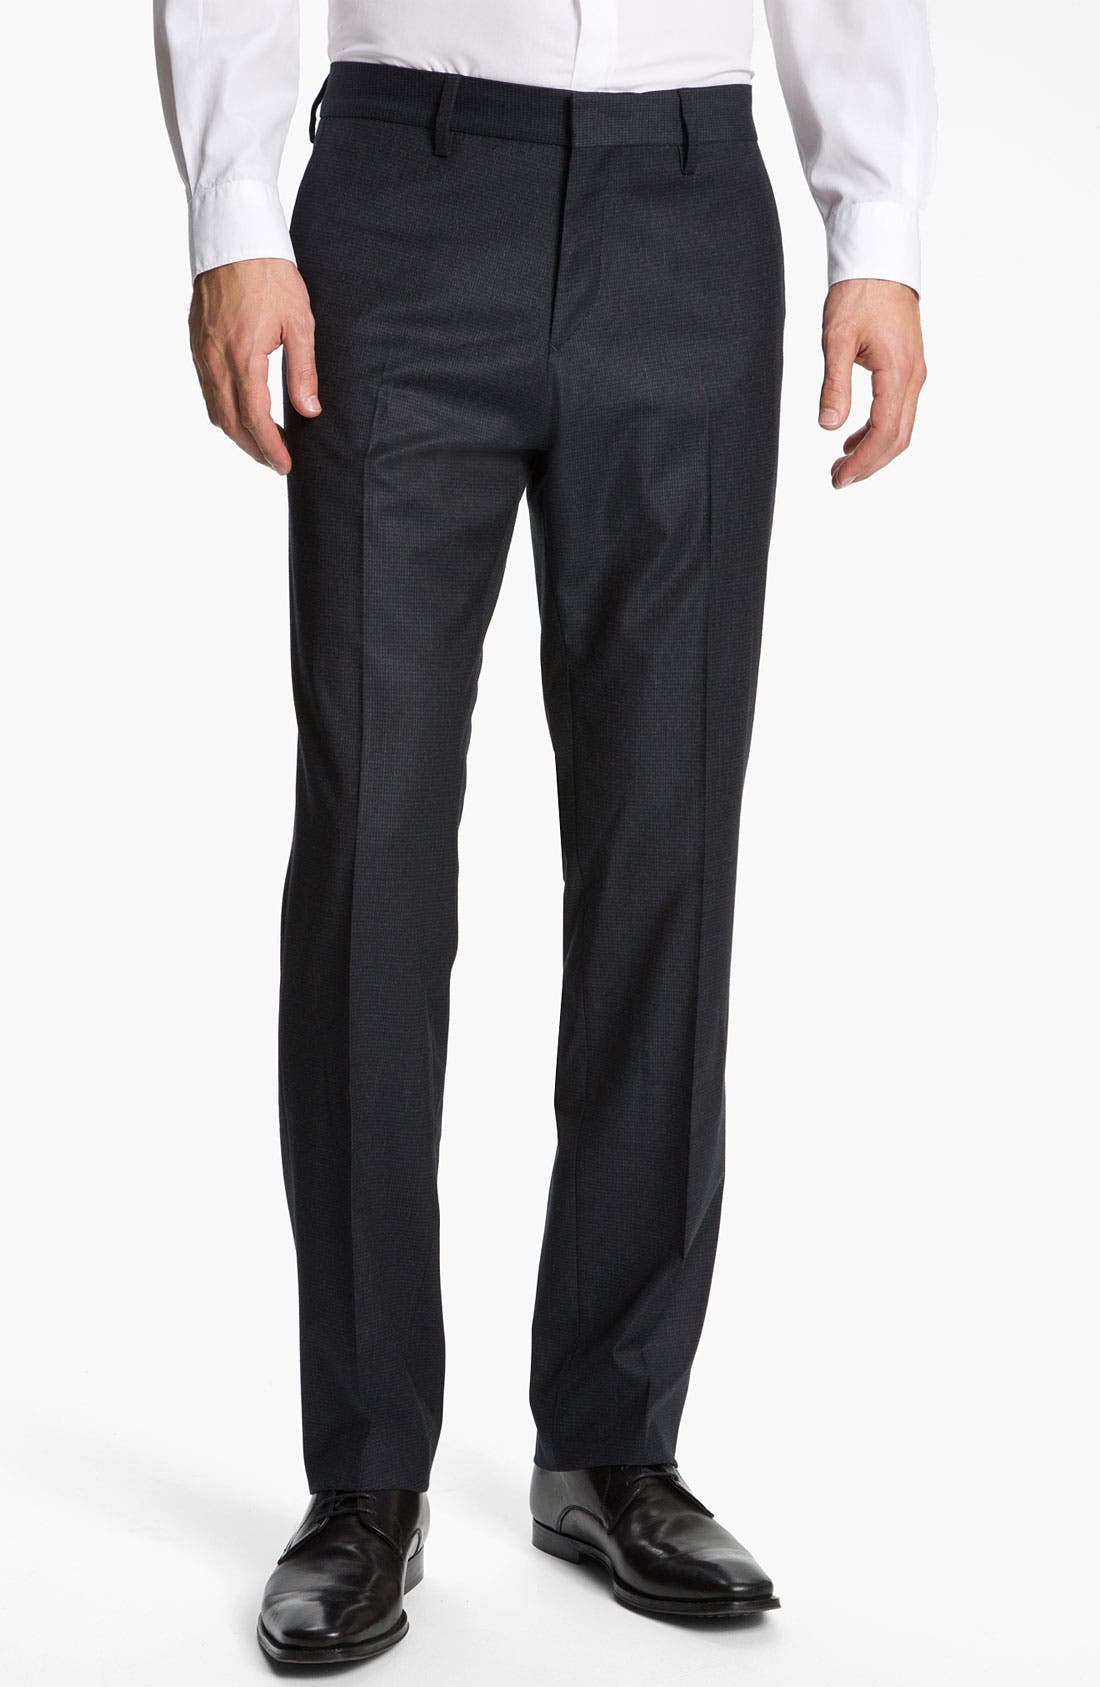 Main Image - BOSS Black 'Crigan' Flat Front Trousers